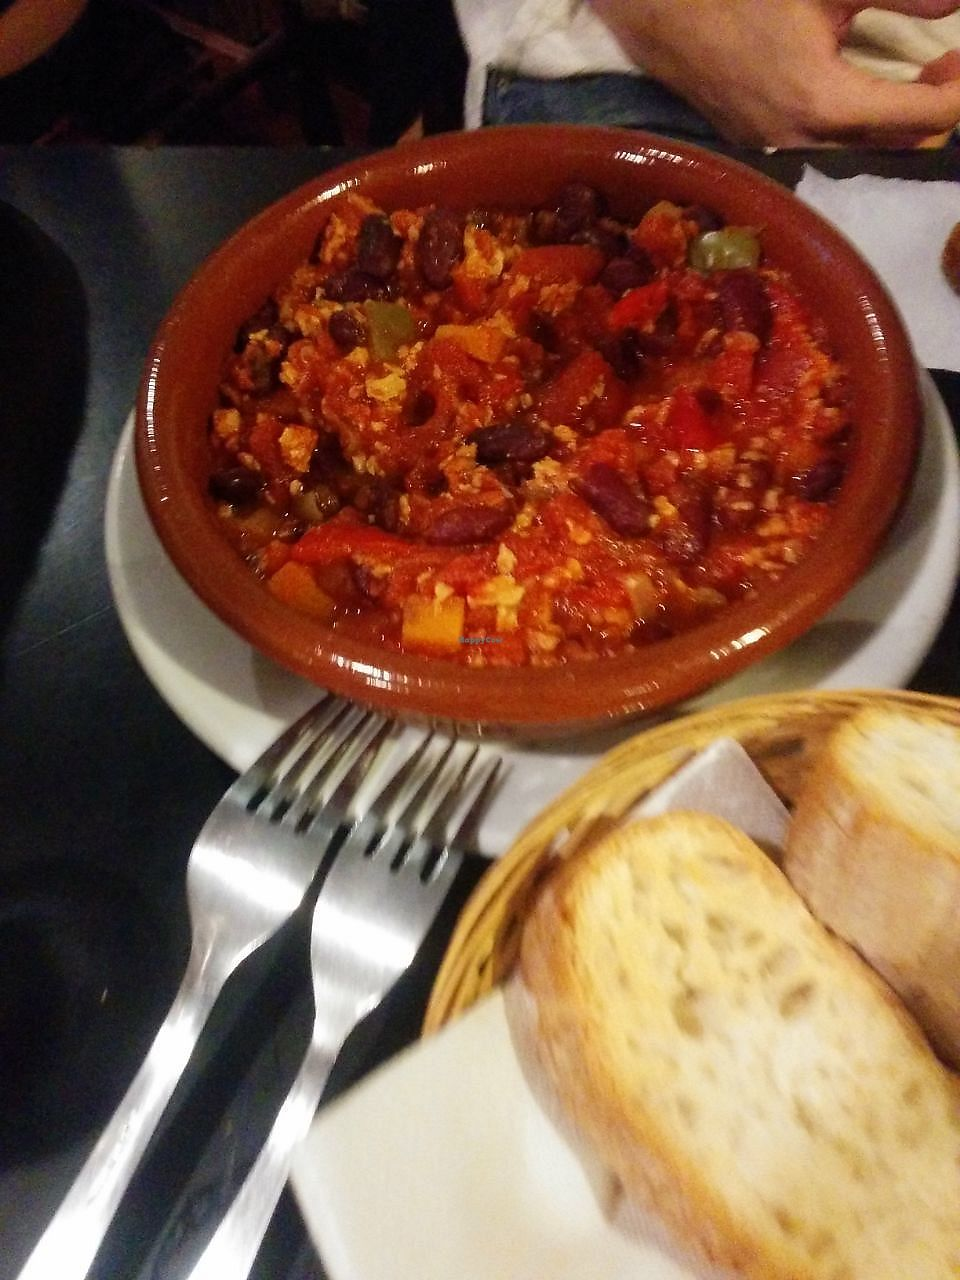 """Photo of Bar Loukanikos  by <a href=""""/members/profile/FlokiTheCat"""">FlokiTheCat</a> <br/>Chili con carne (vegan) <br/> September 20, 2017  - <a href='/contact/abuse/image/48420/306533'>Report</a>"""